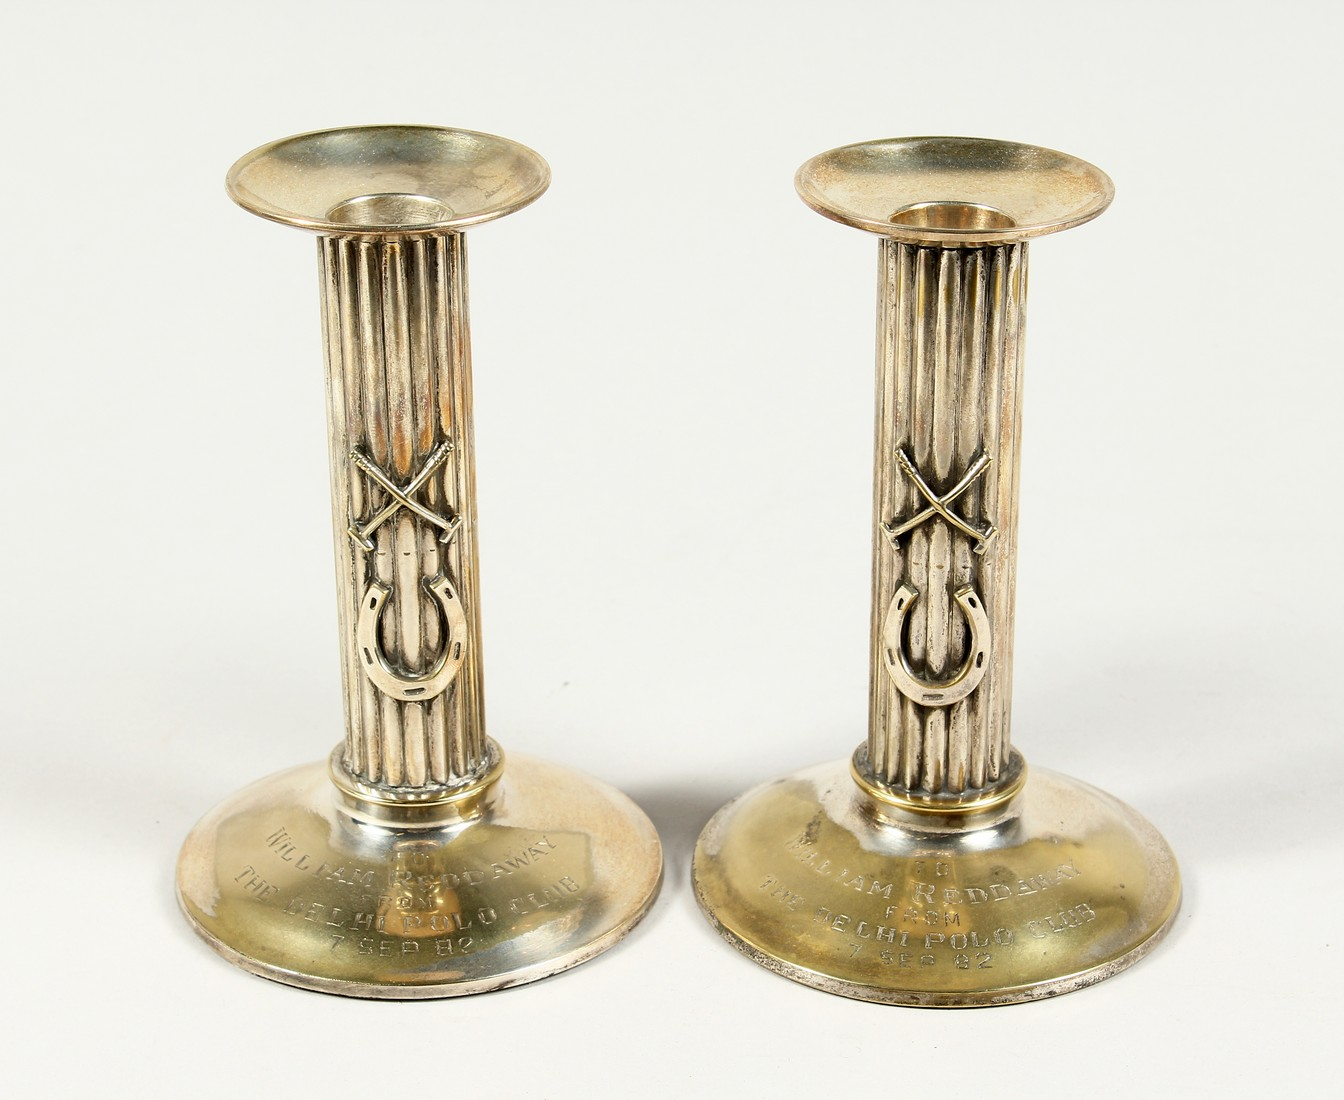 A PAIR OF POLO PRESENTATION CANDLESTICKS, 'To William Reddaway From The Delhi Polo Club', with cross